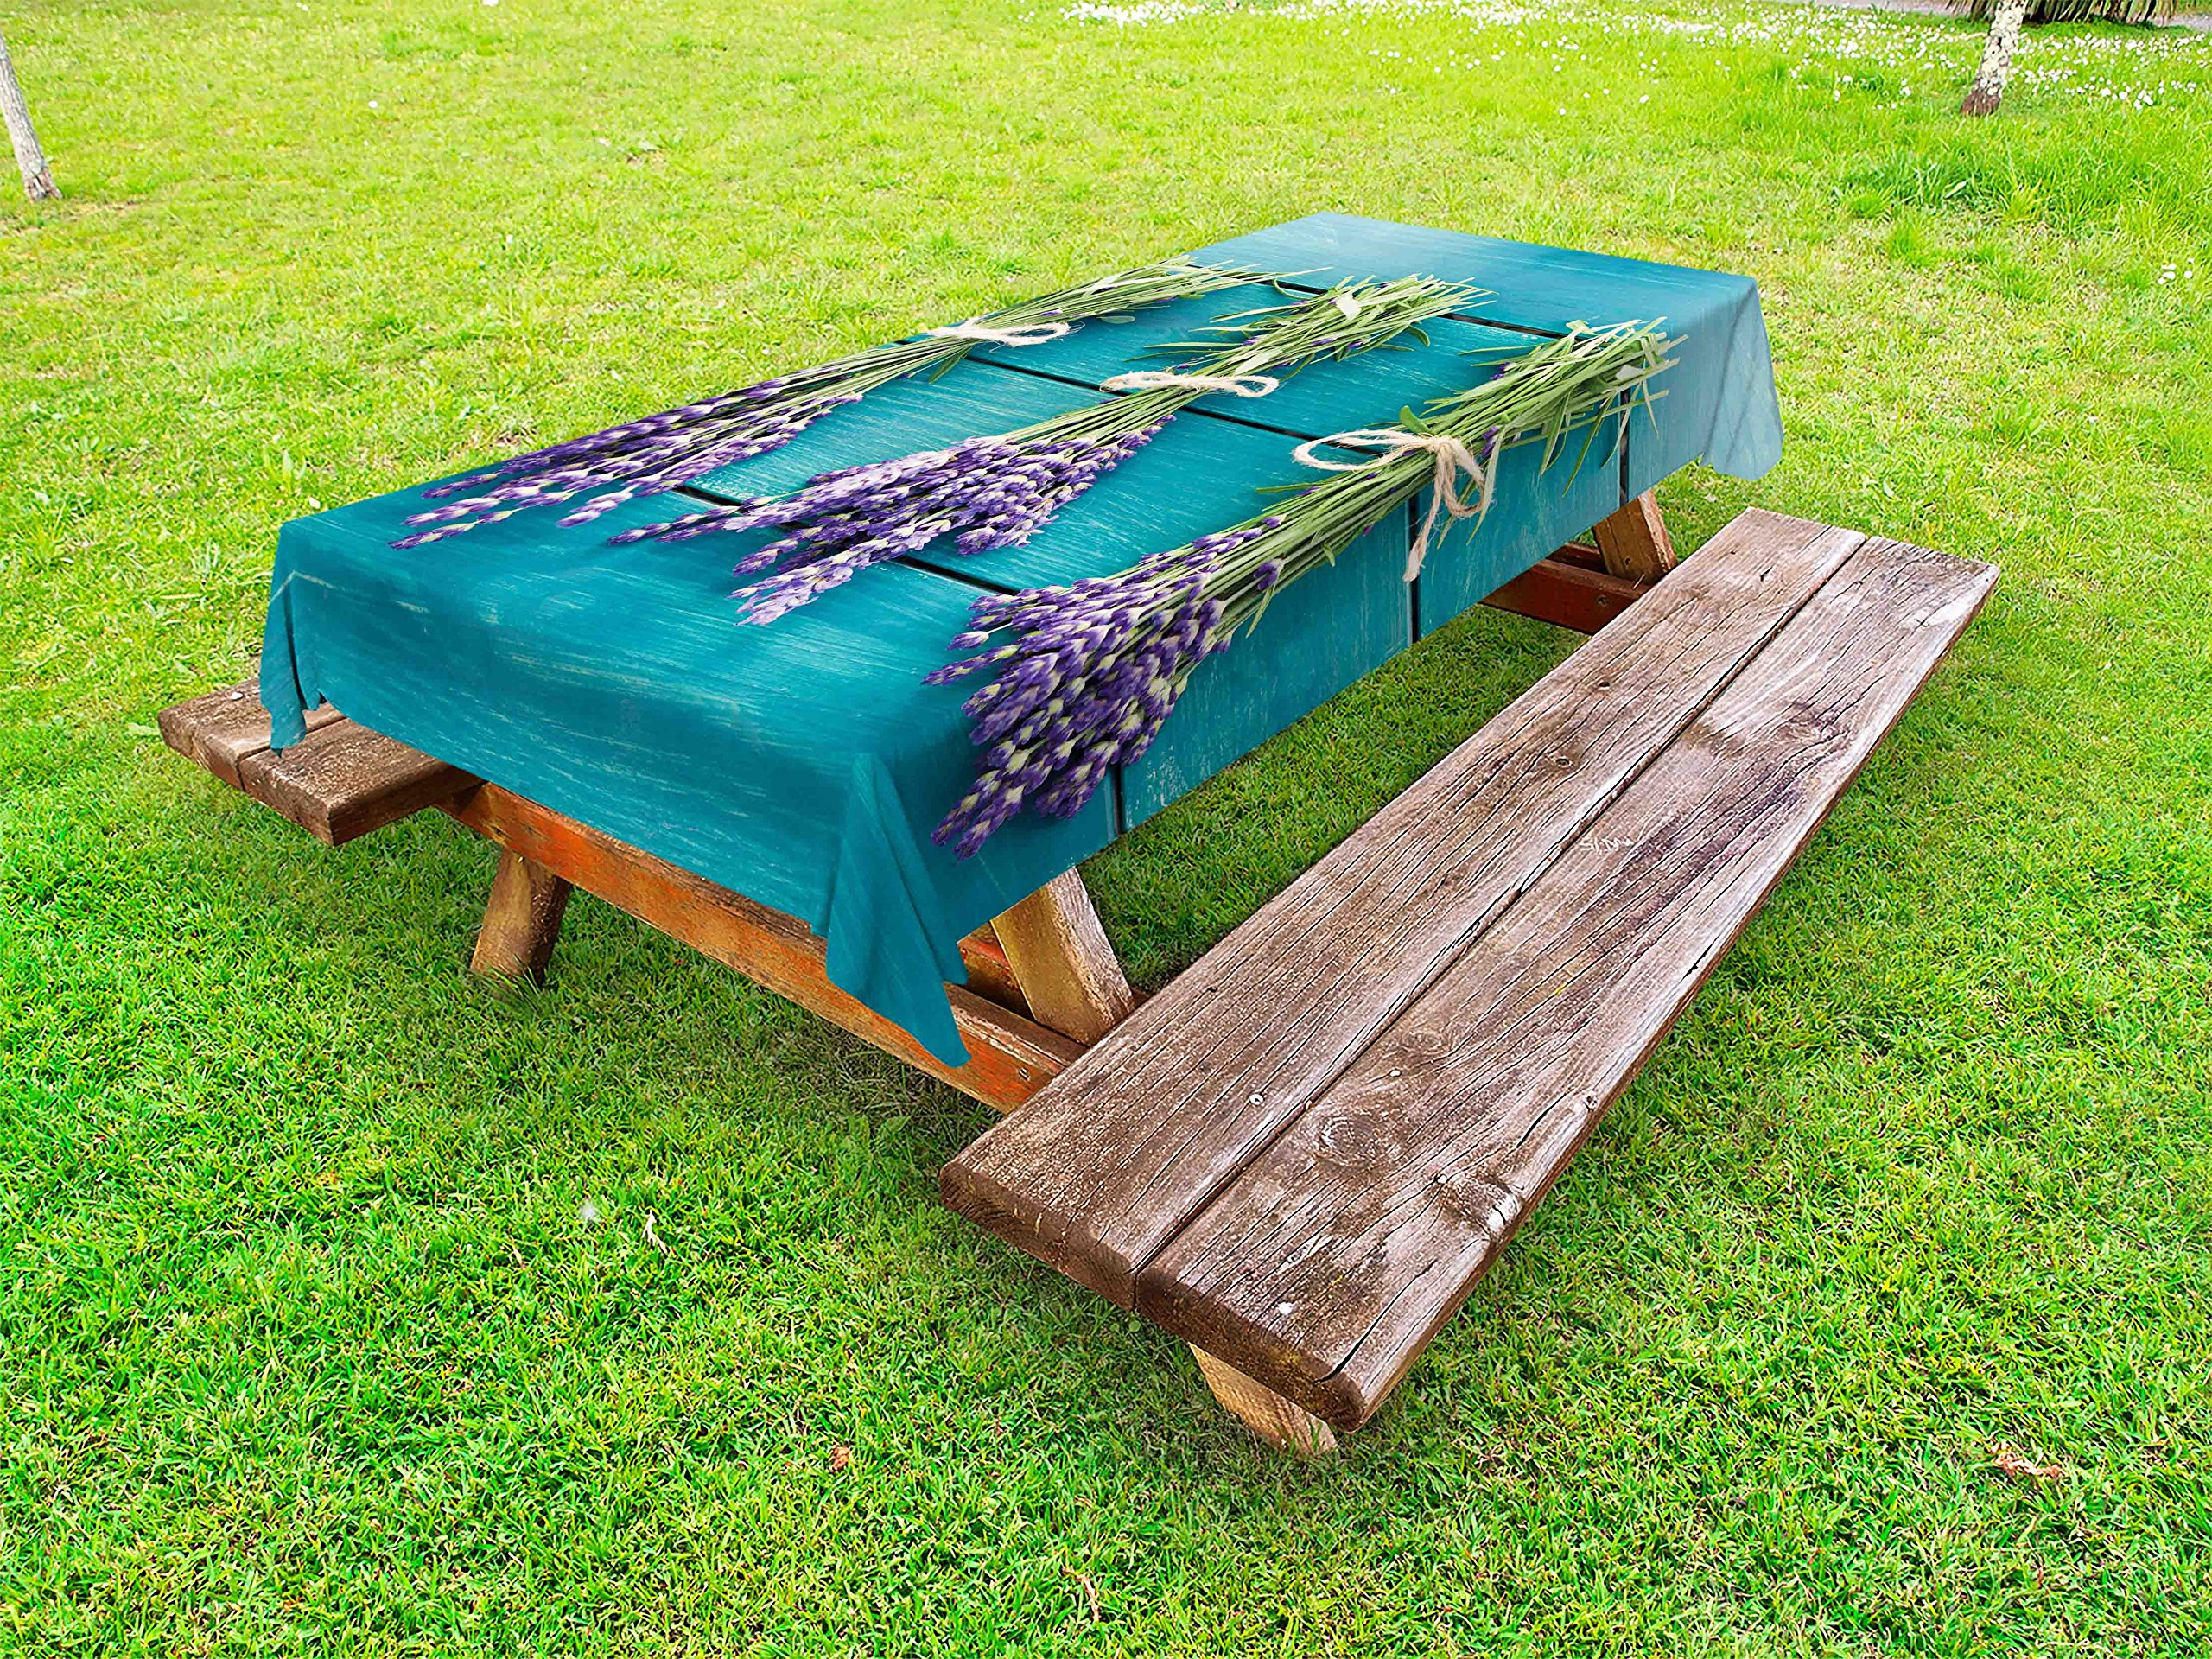 Lunarable Lavender Outdoor Tablecloth, Fresh Lavender Bouquets on Blue Wooden Planks Rustic Relaxing Spa, Decorative Washable Picnic Table Cloth, 58 X 84 inches, Sky Blue Lavender Green